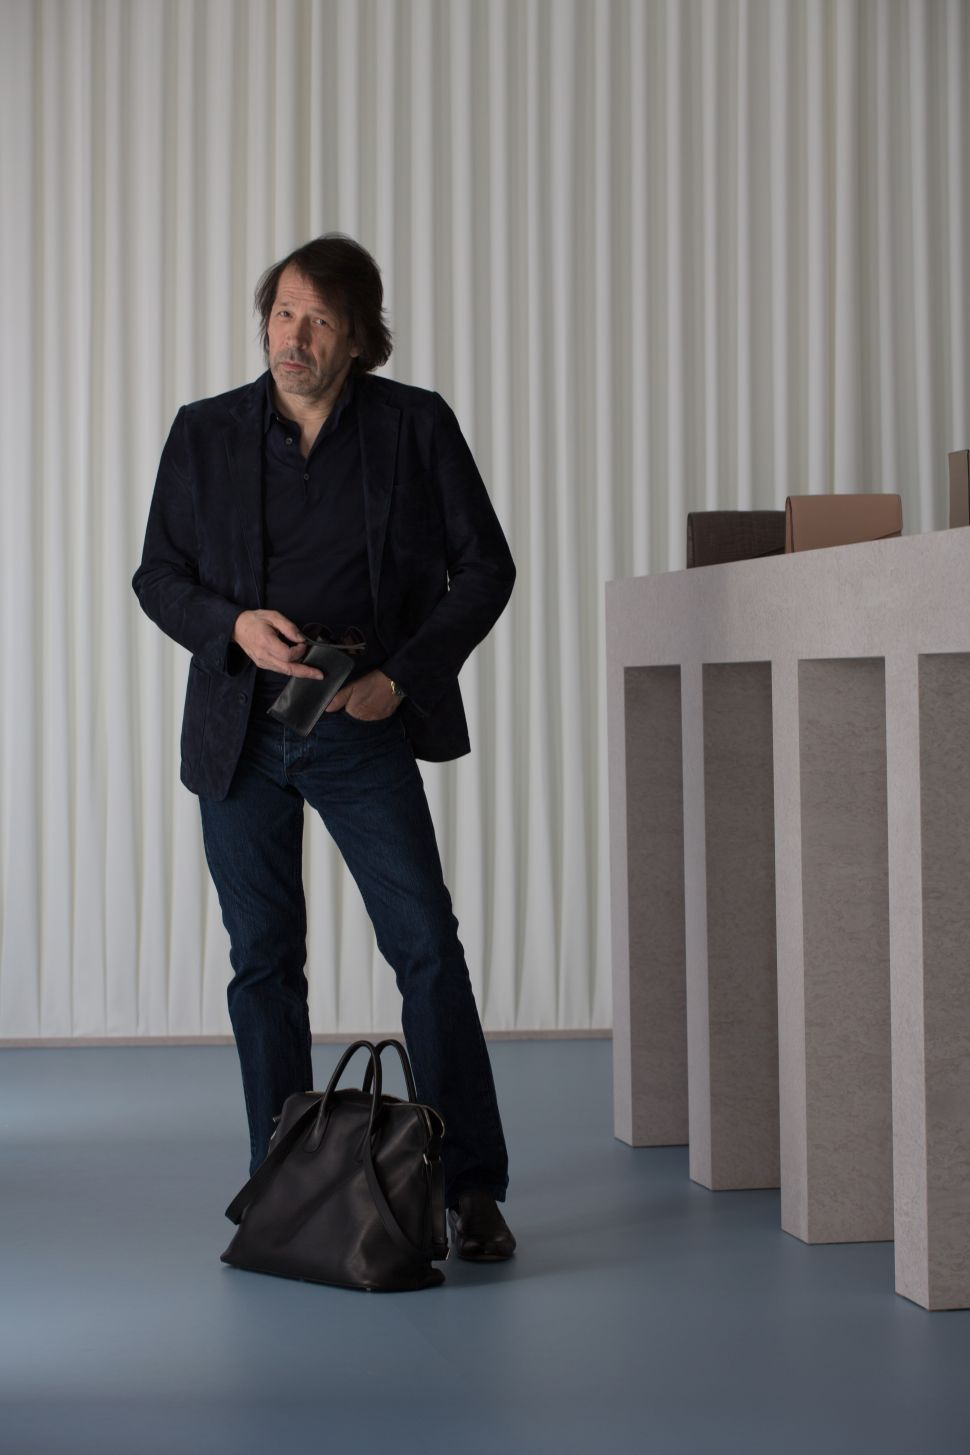 Peter Saville Lends His Design Expertise to Valextra